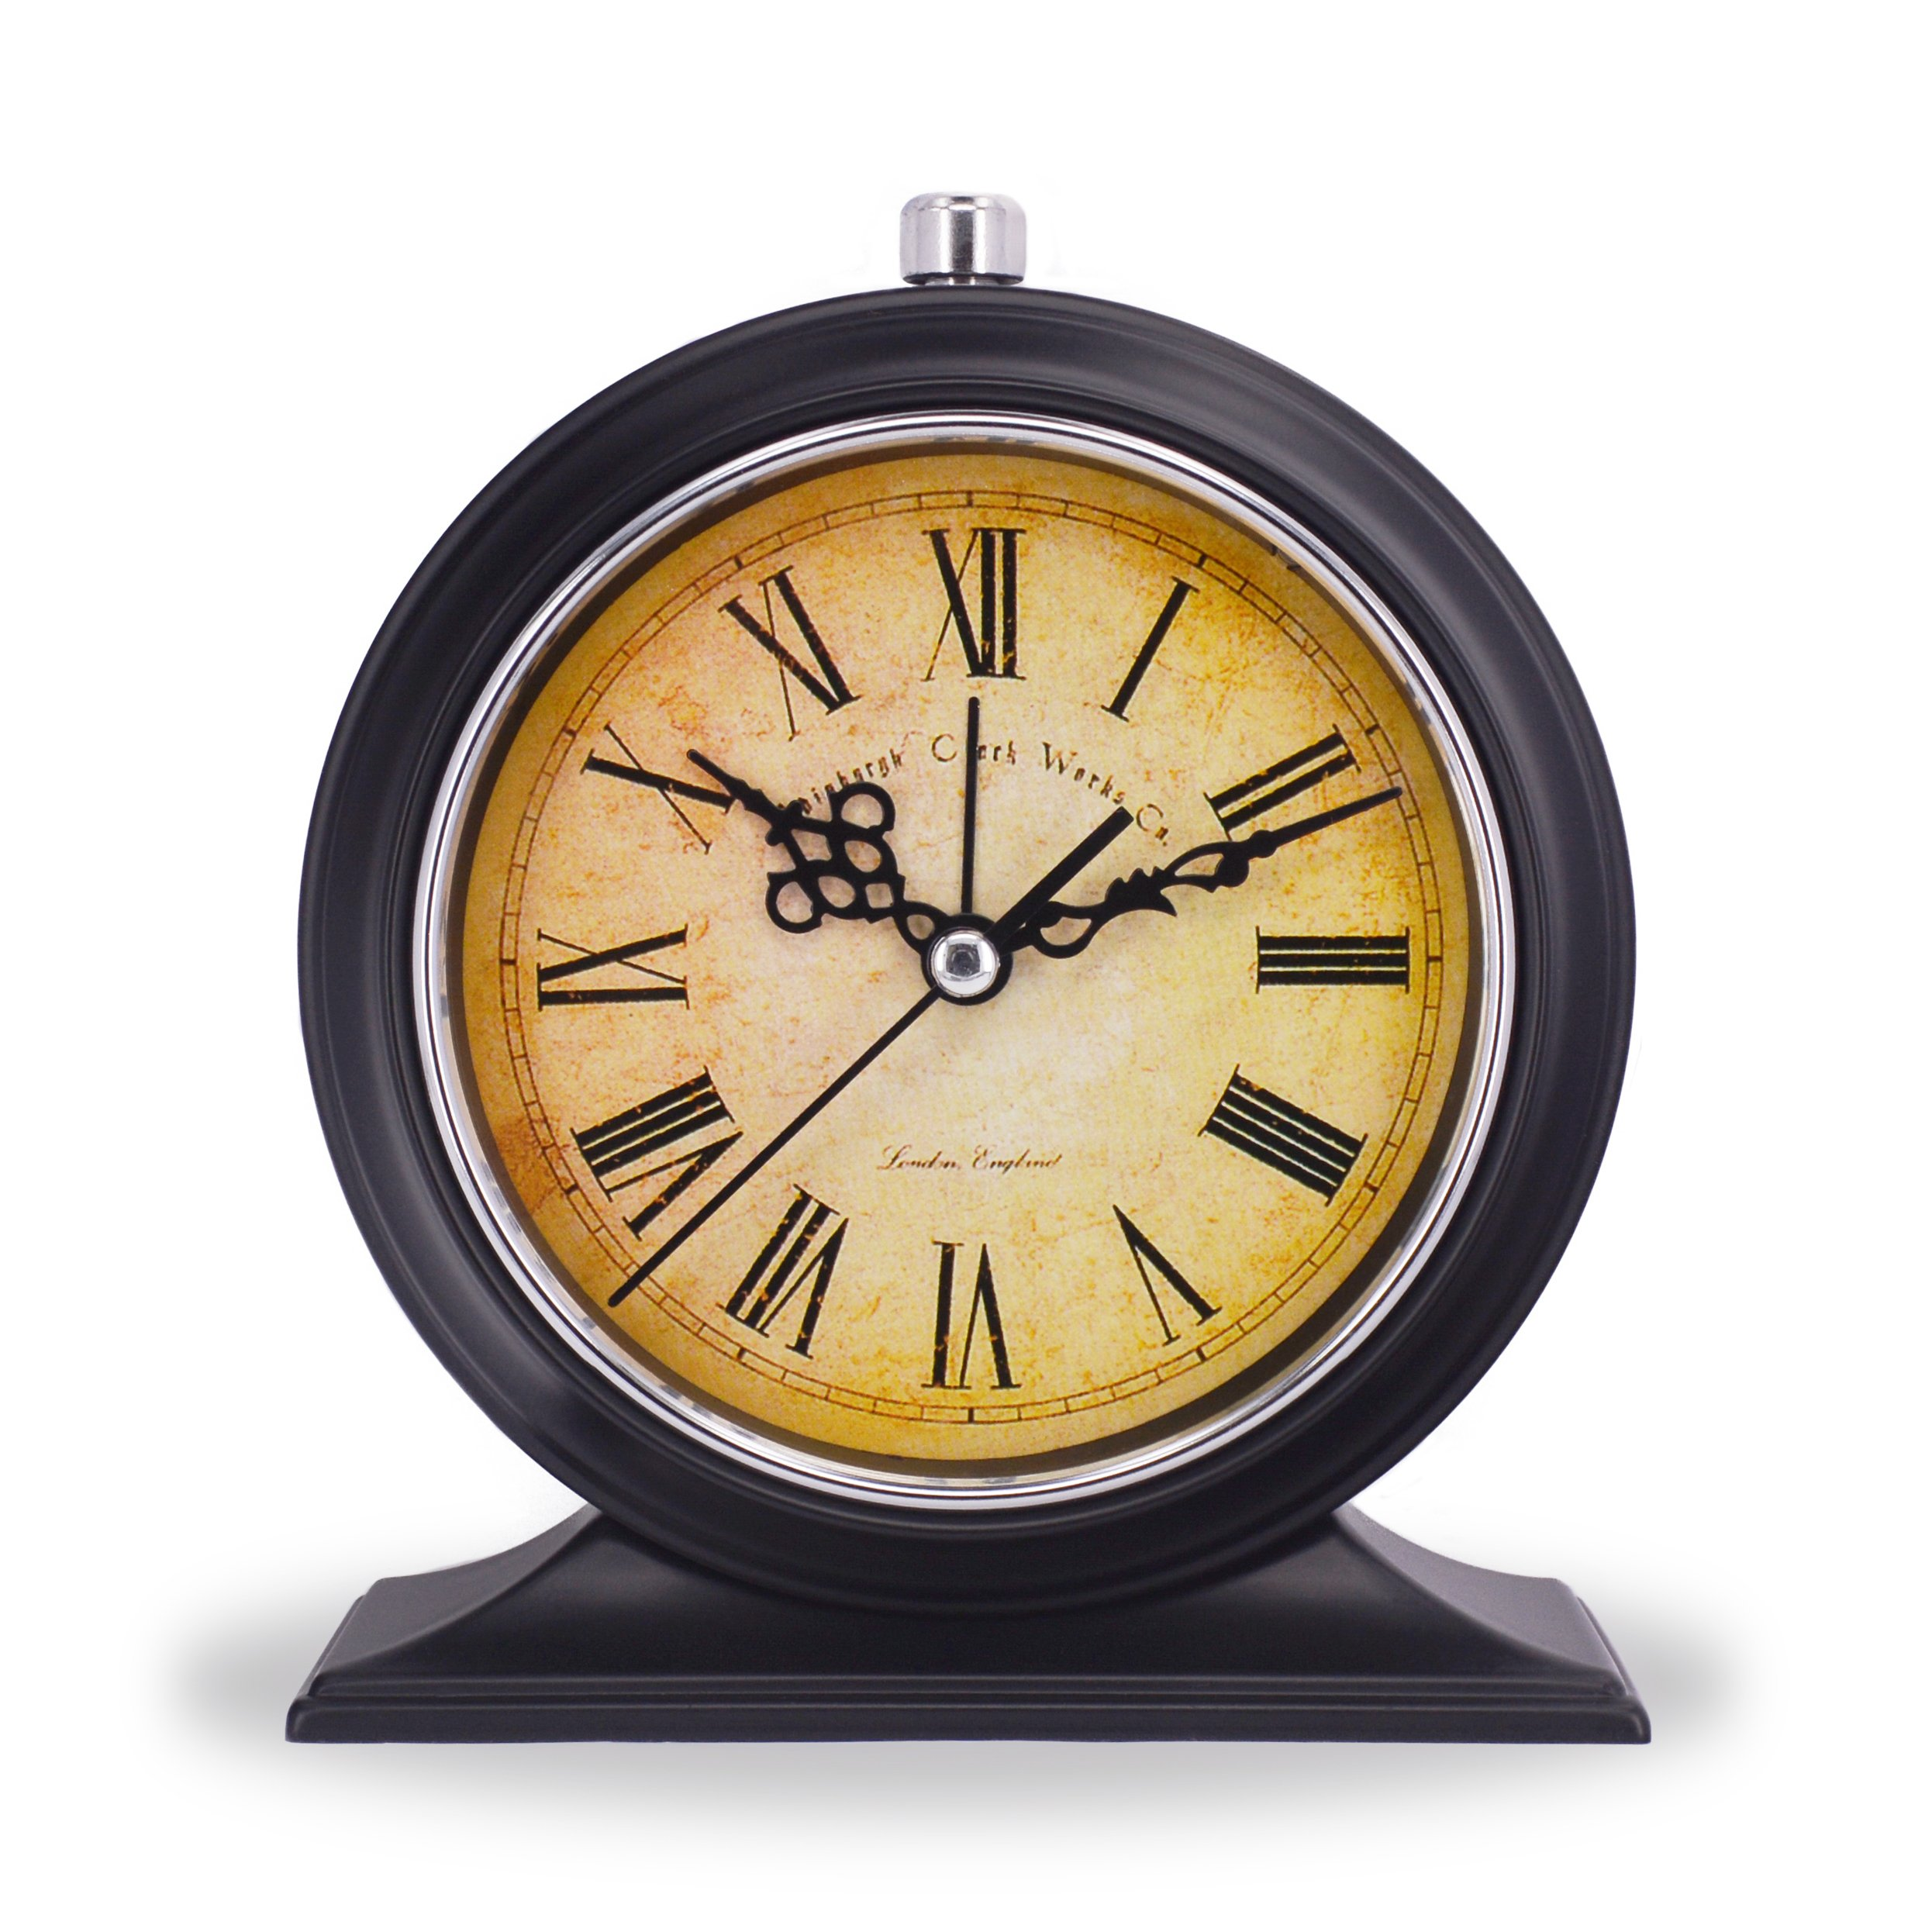 Vintage Hotel Style Retro Old Fashioned Decorative Quiet Non-Ticking Sweep Second Hand, Quartz Analog Desk Clock, for Bedrooms, Battery Operated, Loud Alarm, Nightlight Function (Antique Style)